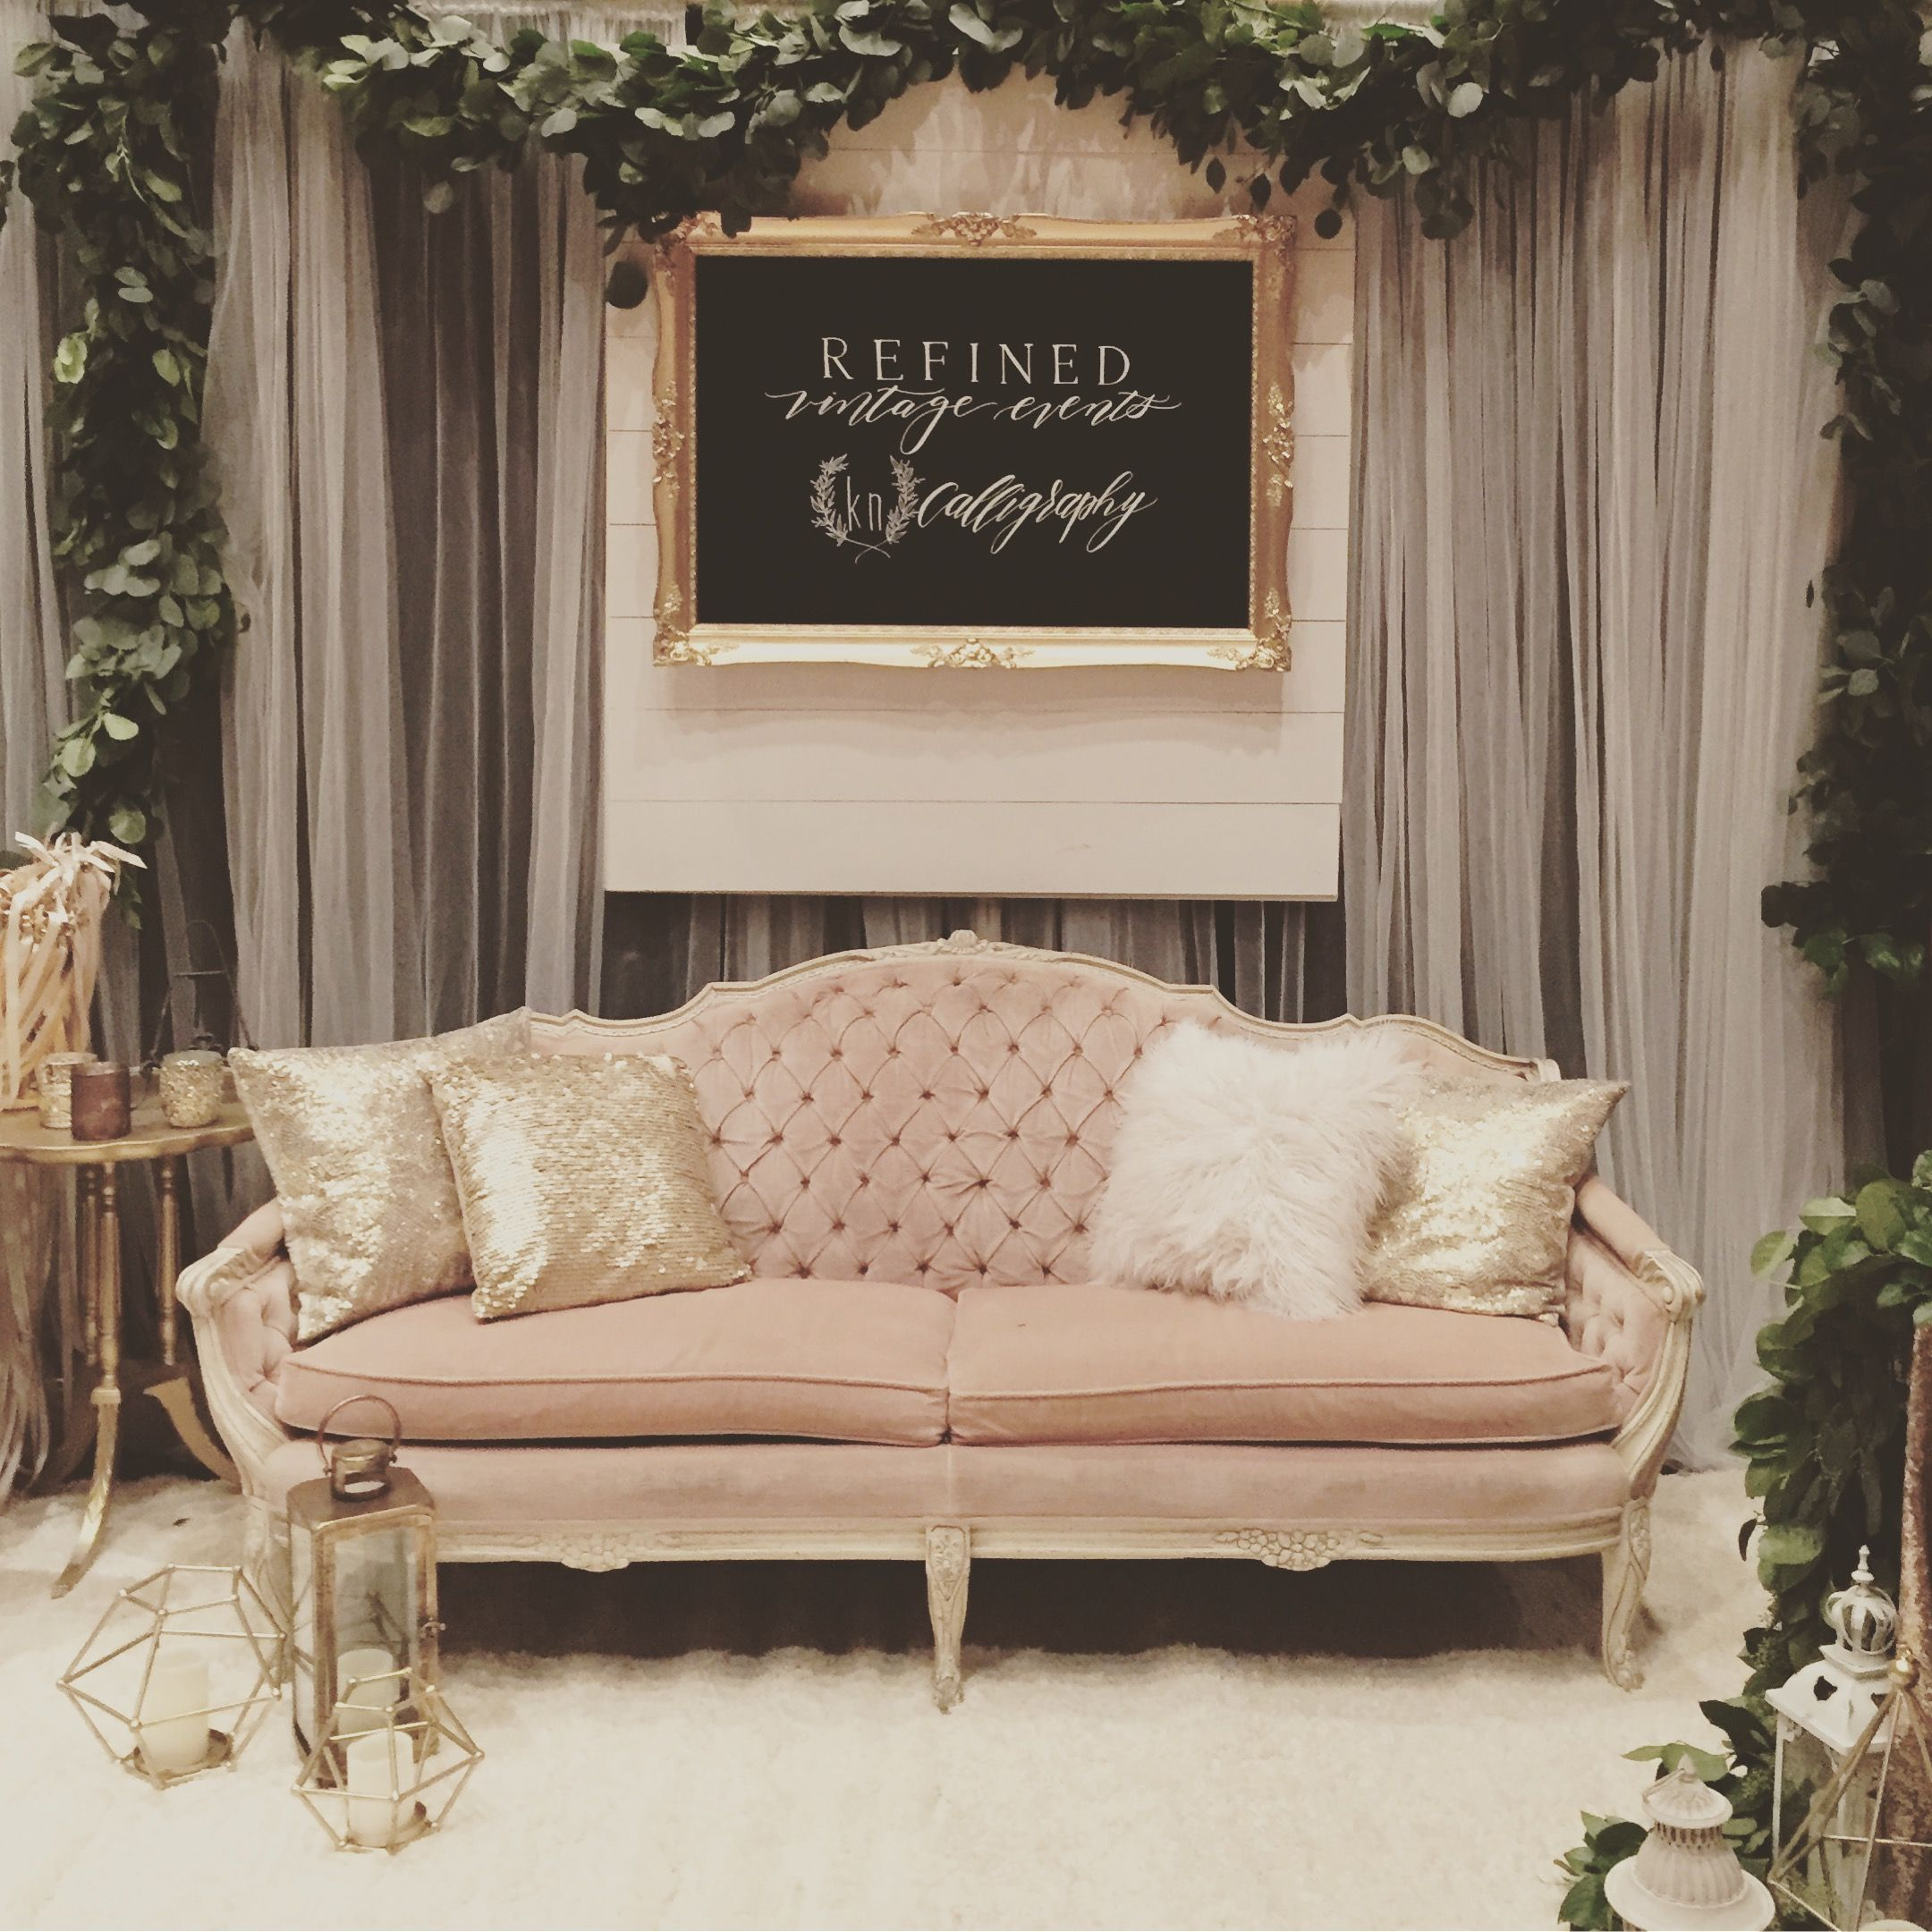 Vintage Rentals For Hire! Rent An Amazing Couch For Your